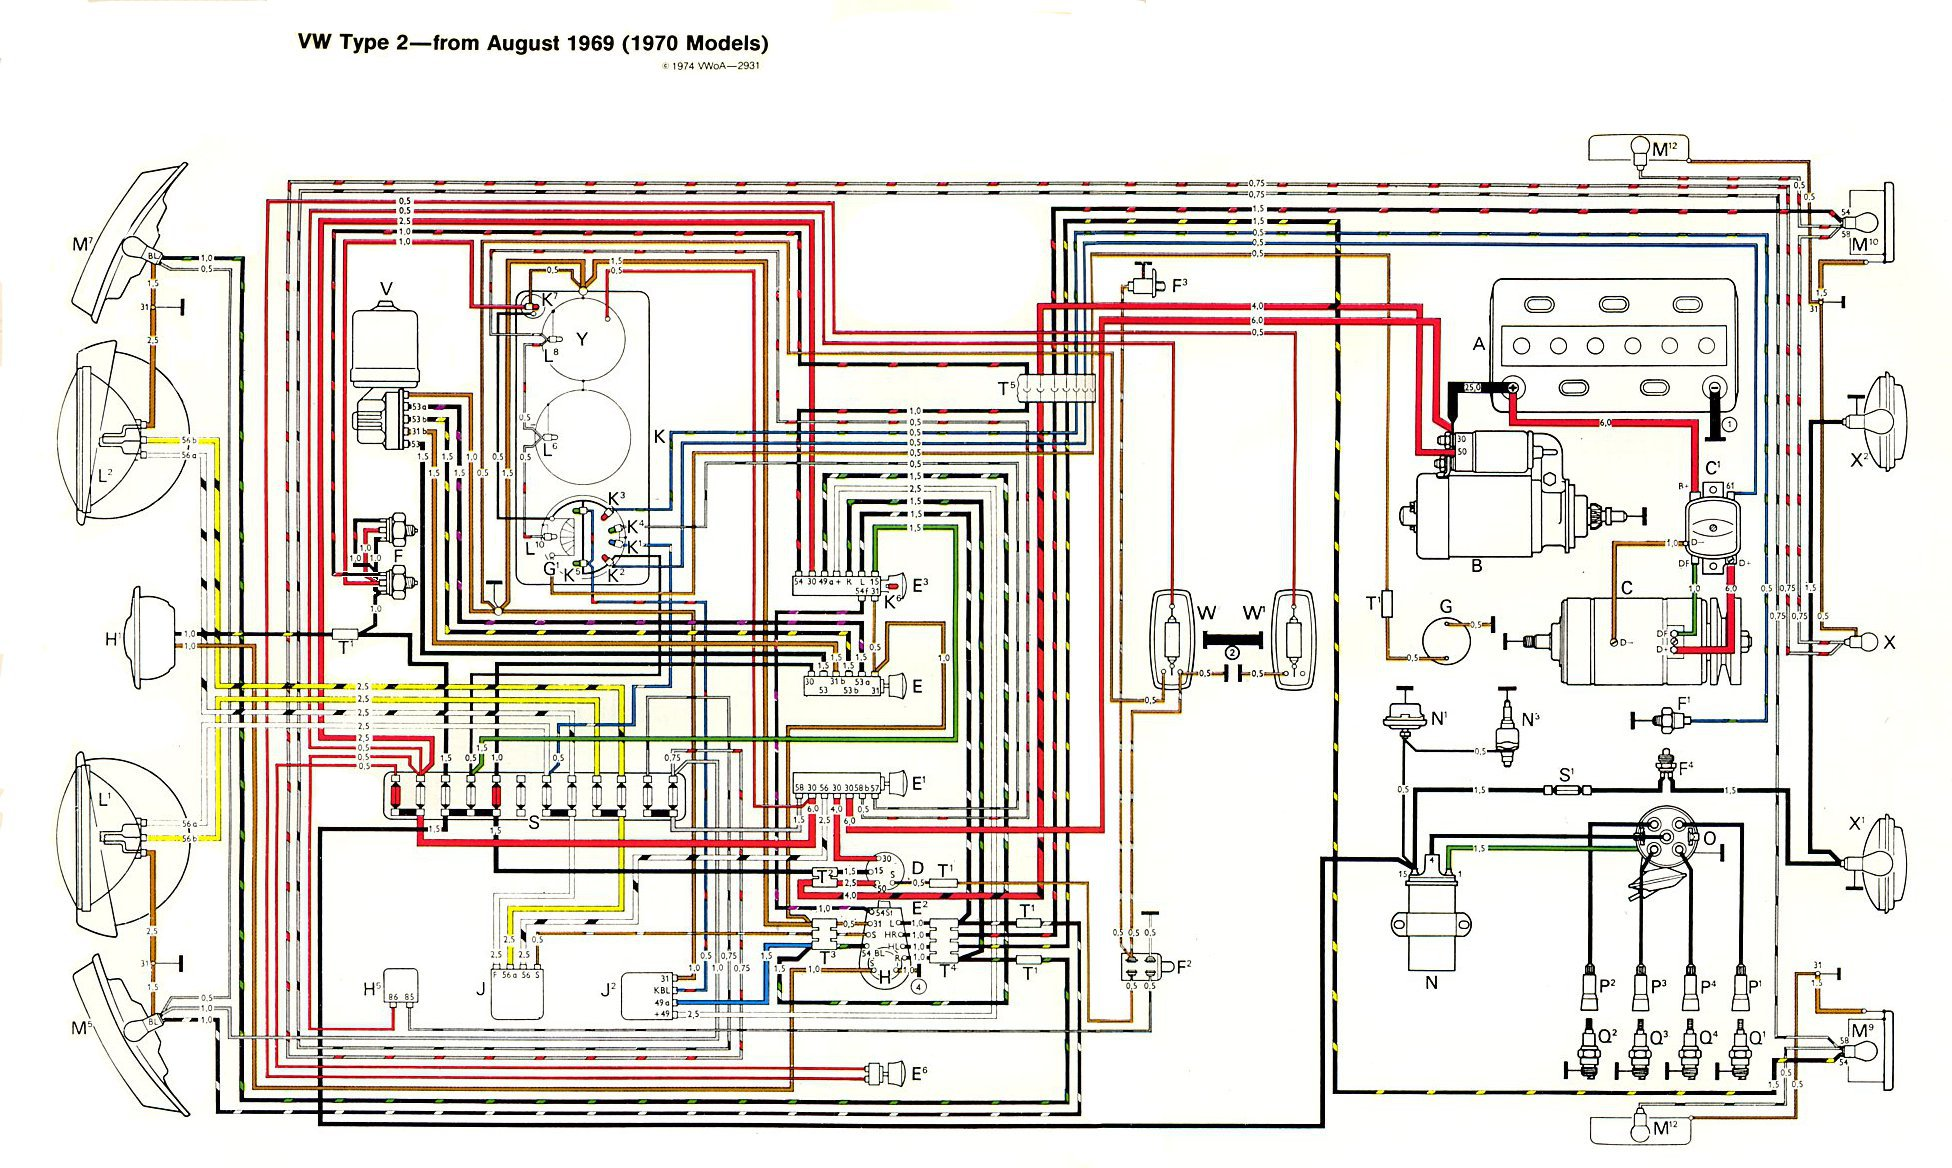 baybus_70 thesamba com type 2 wiring diagrams 1970 vw bug wiring diagram at gsmportal.co